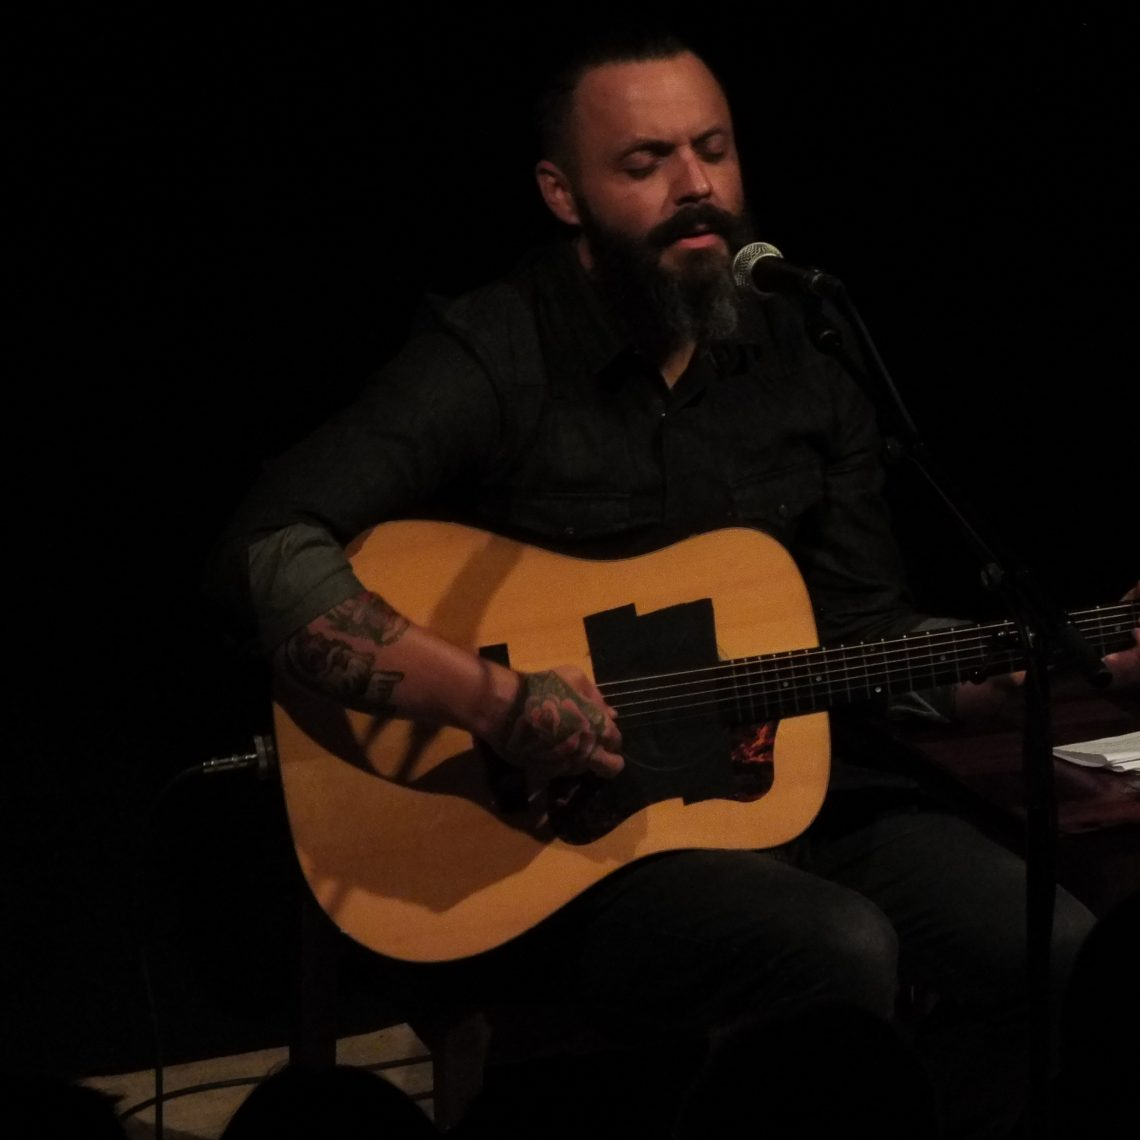 Justin Furstenfeld – Band on the Wall, Manchester